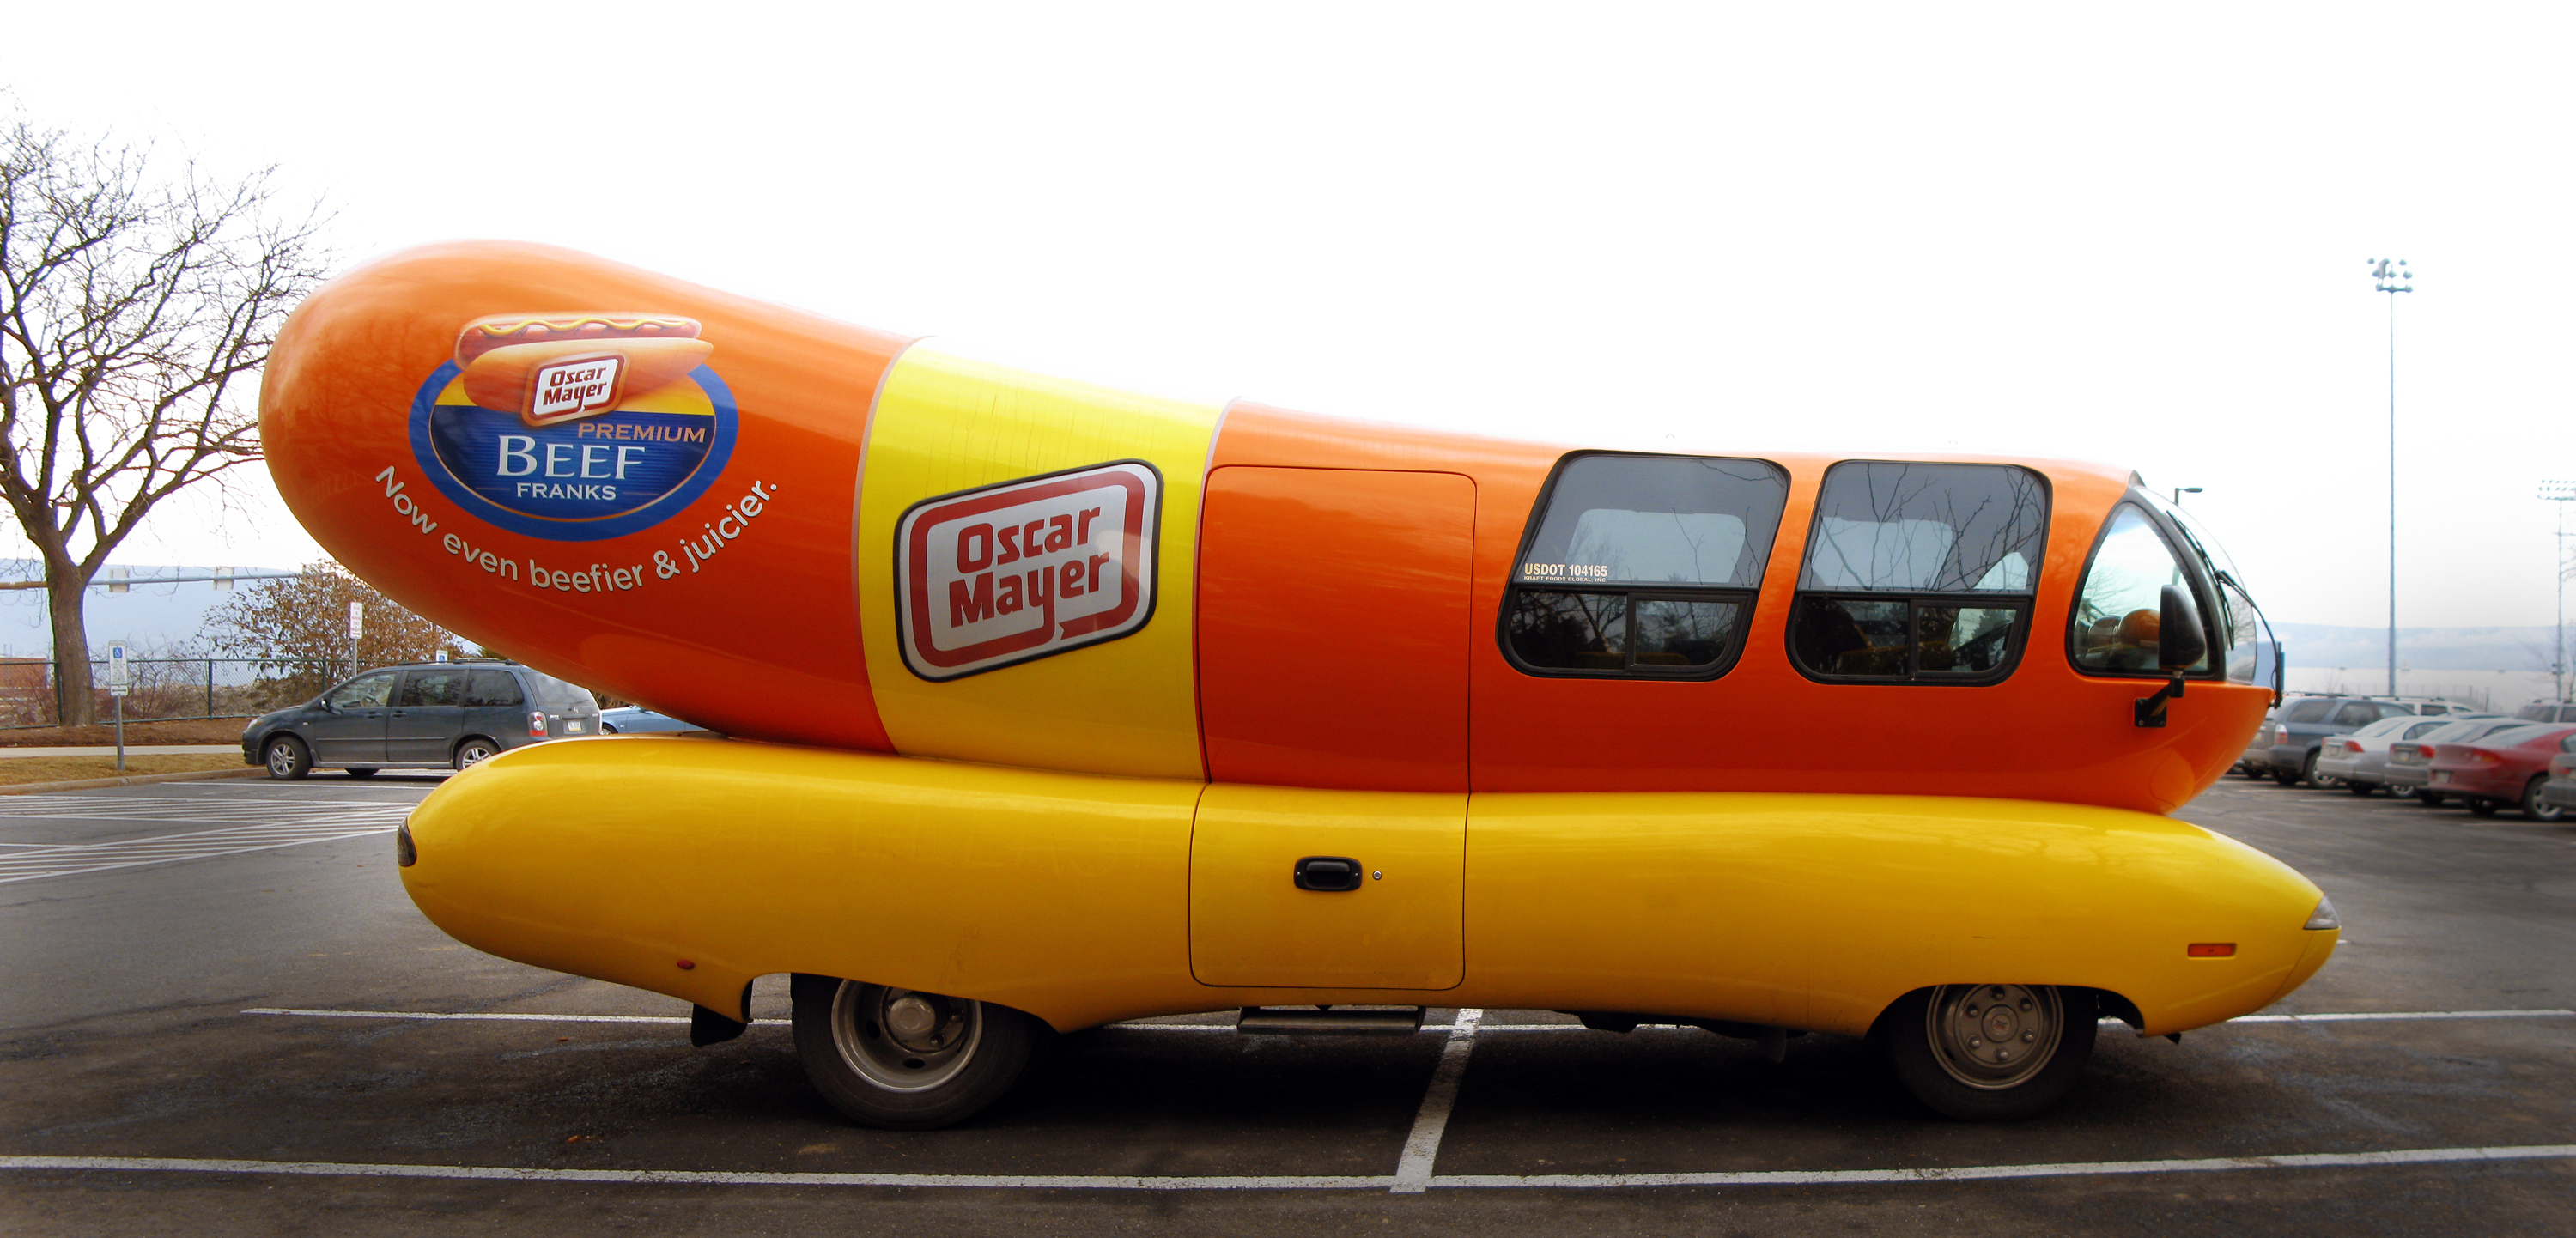 The Show On The Road Our Favorite Art Cars in addition Classic Car Models Pictures 1053 besides Oscar Mayer Wienermobile additionally Eton College Shooting Protesters Exam Question n 3330327 in addition 1996 Vintage Oscar Mayer Weinermobile. on oscar mayer vehicle